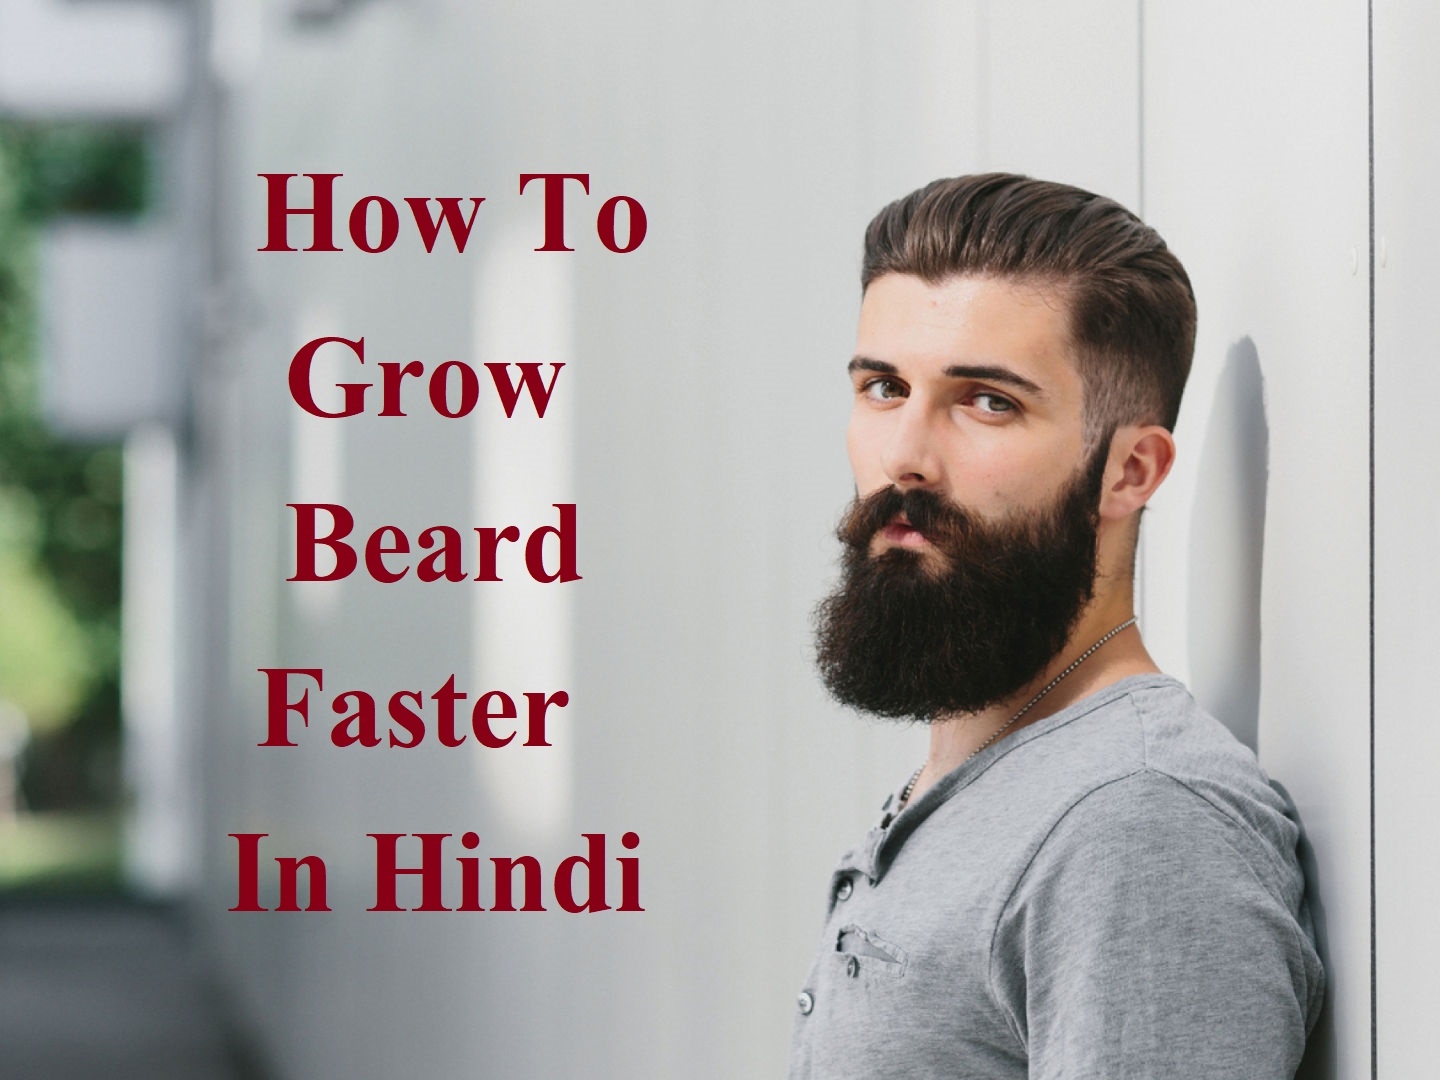 तेजी से दाढ़ी बढाने के 11 तरीके, How To Grow Beard Faster In Hindi,Nayichetana.com, Tej Dadhi kaise banaye, Beard Kaise badhaye, dadi Beard Grow kaise kare